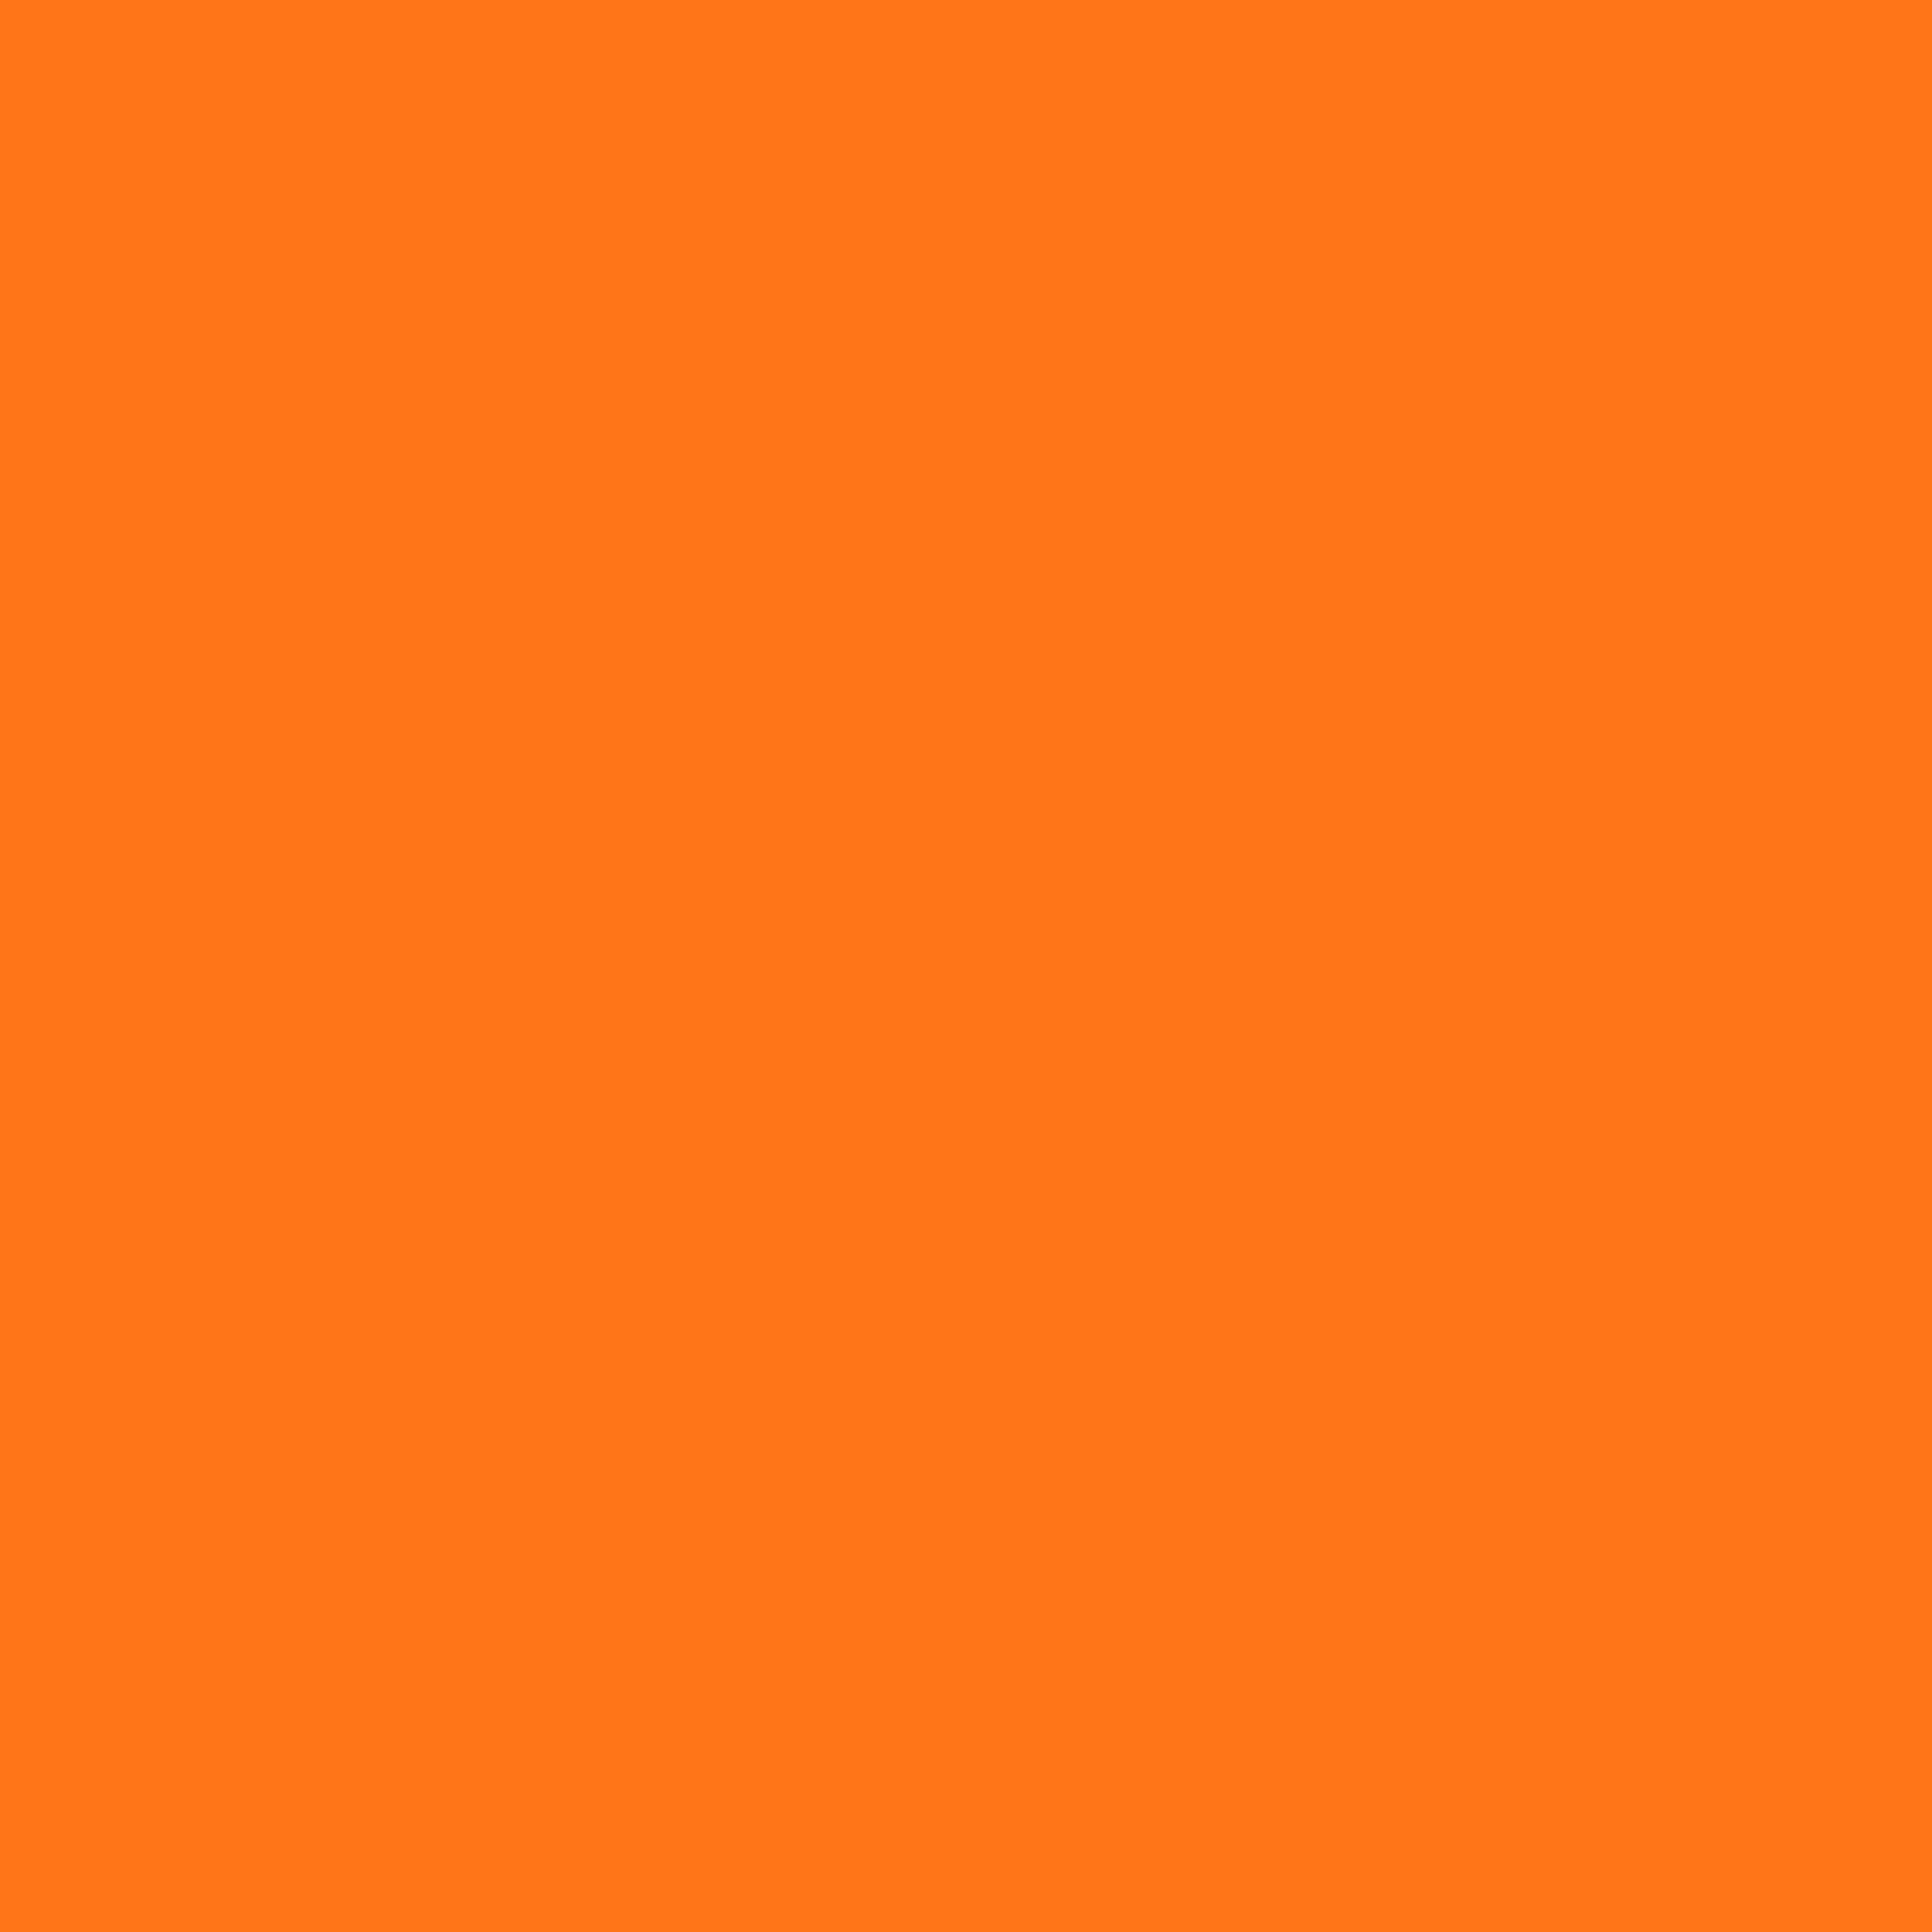 2048x2048 Pumpkin Solid Color Background